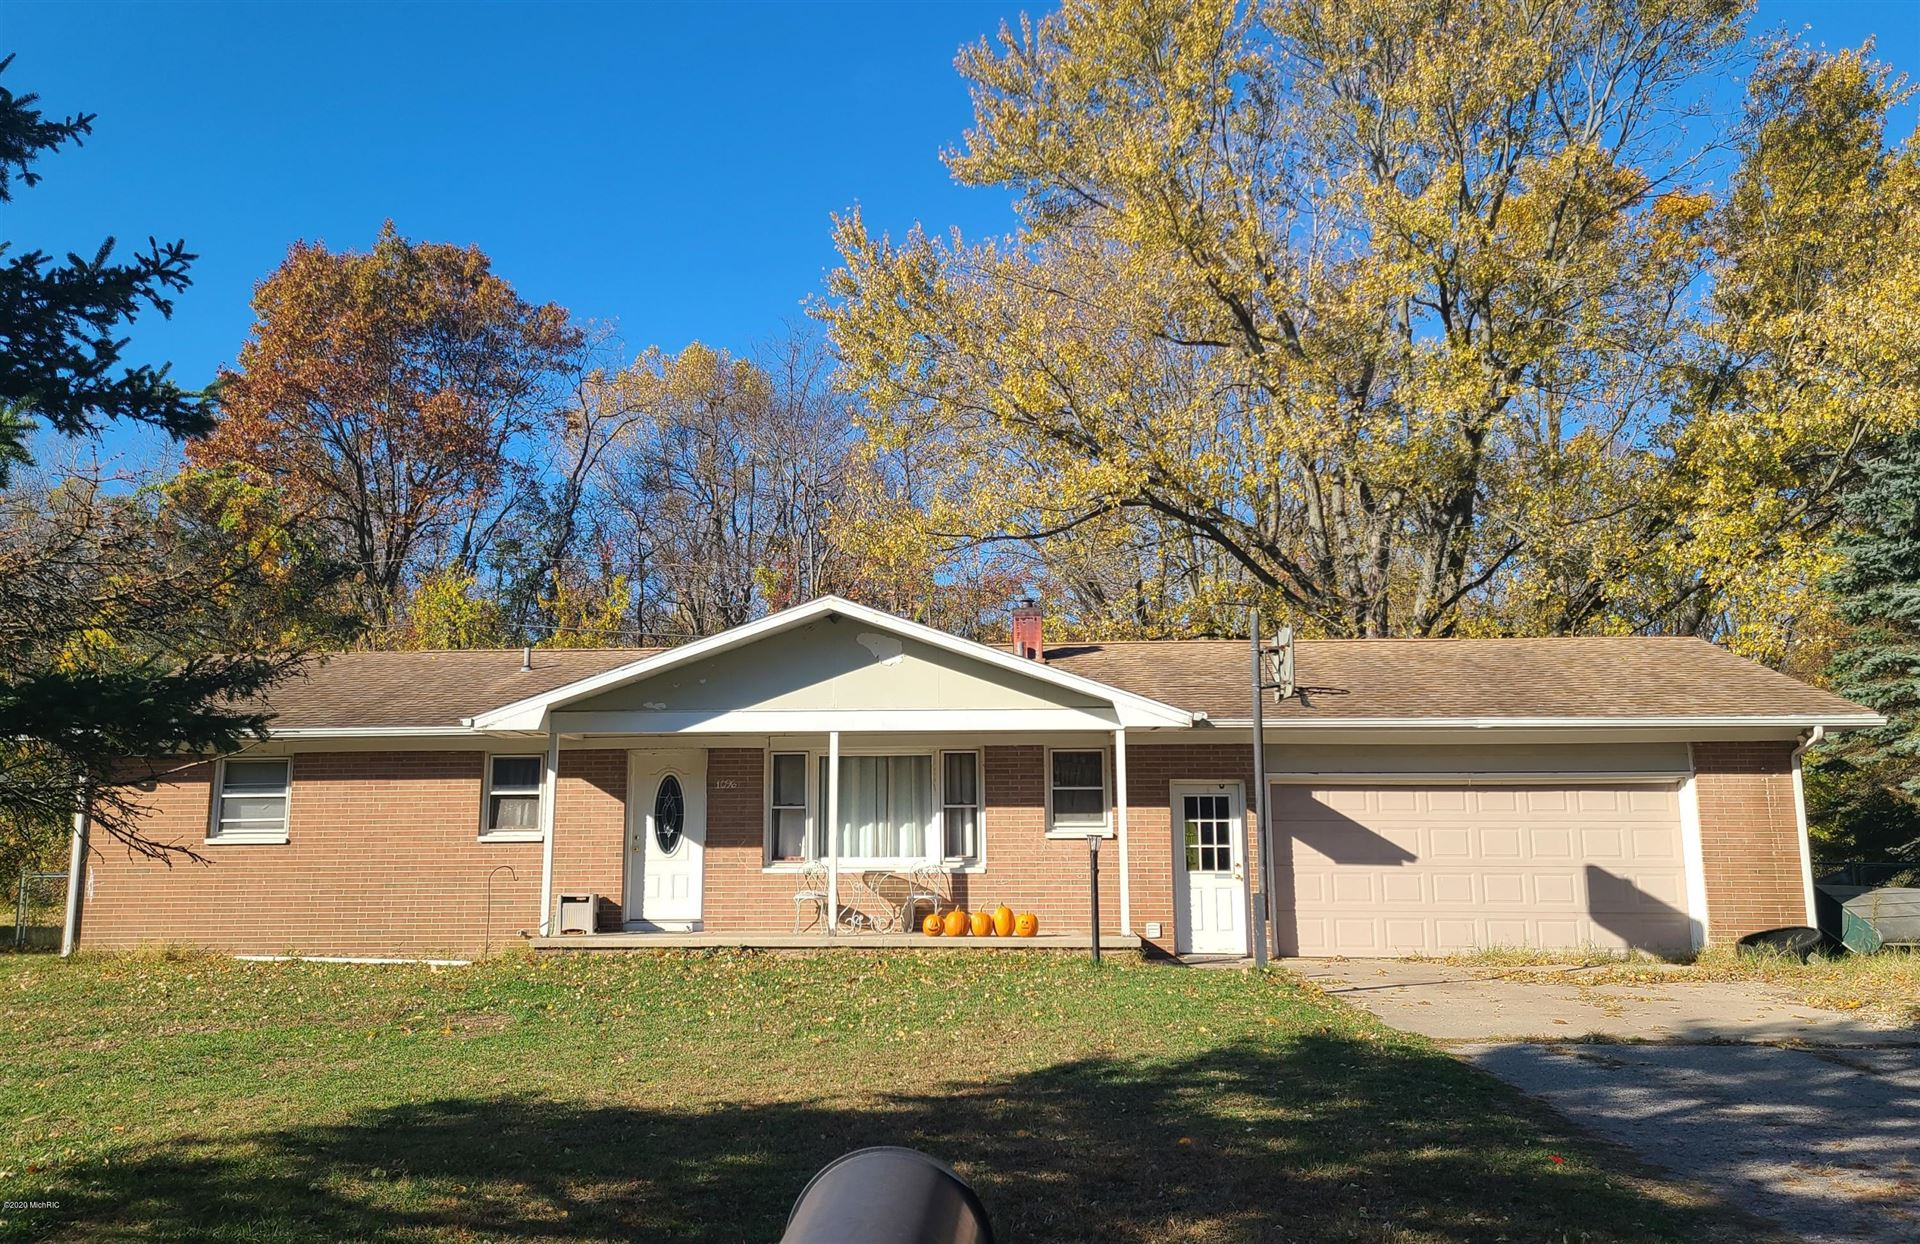 1096 Louis Drive, Benton Harbor, MI 49022 - MLS#: 21010502